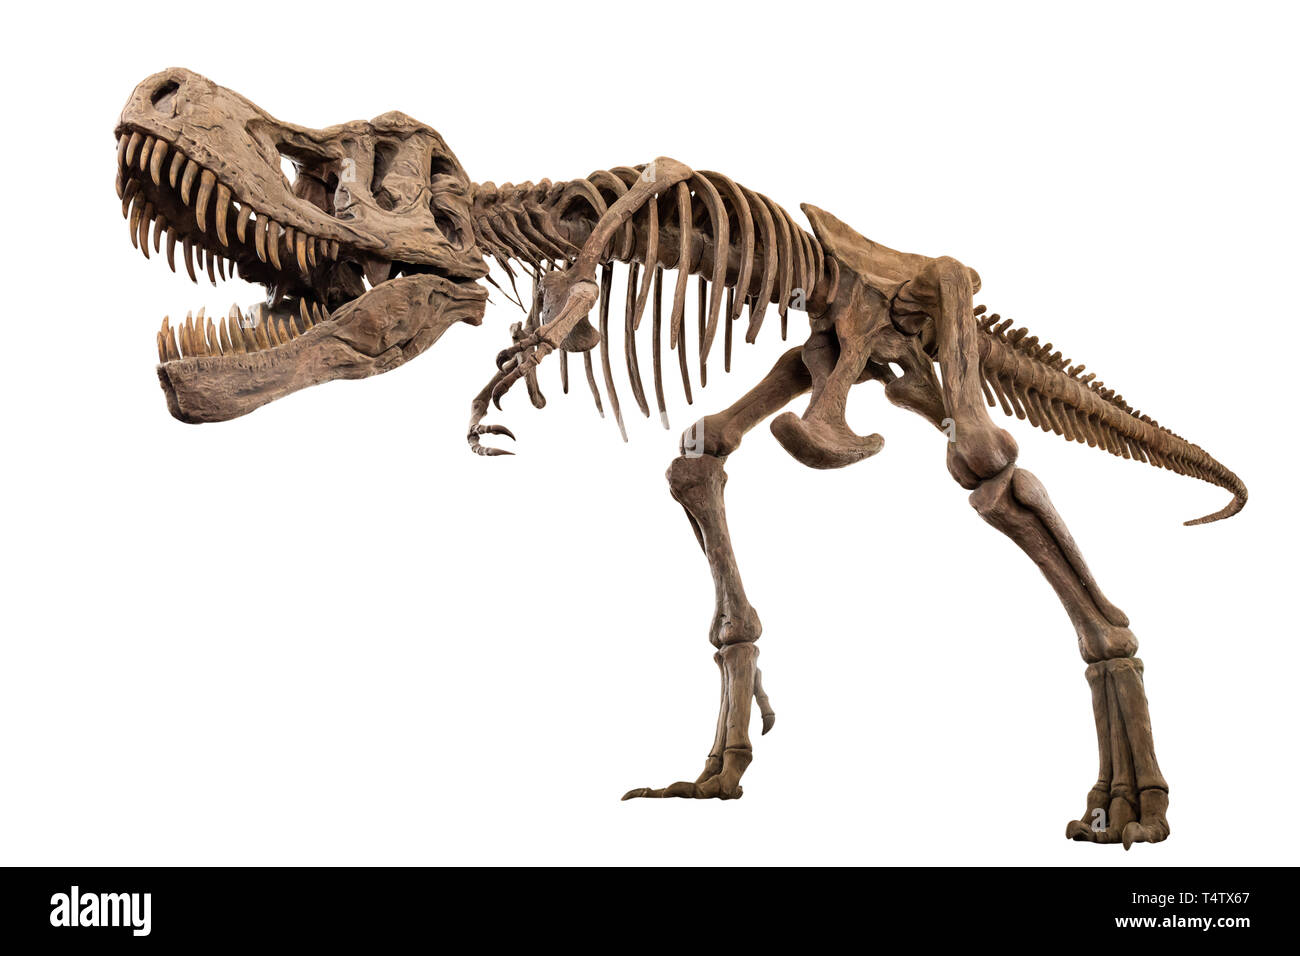 Tyrannosaurus Rex skeleton on isolated background . Embedded clipping paths . - Stock Image